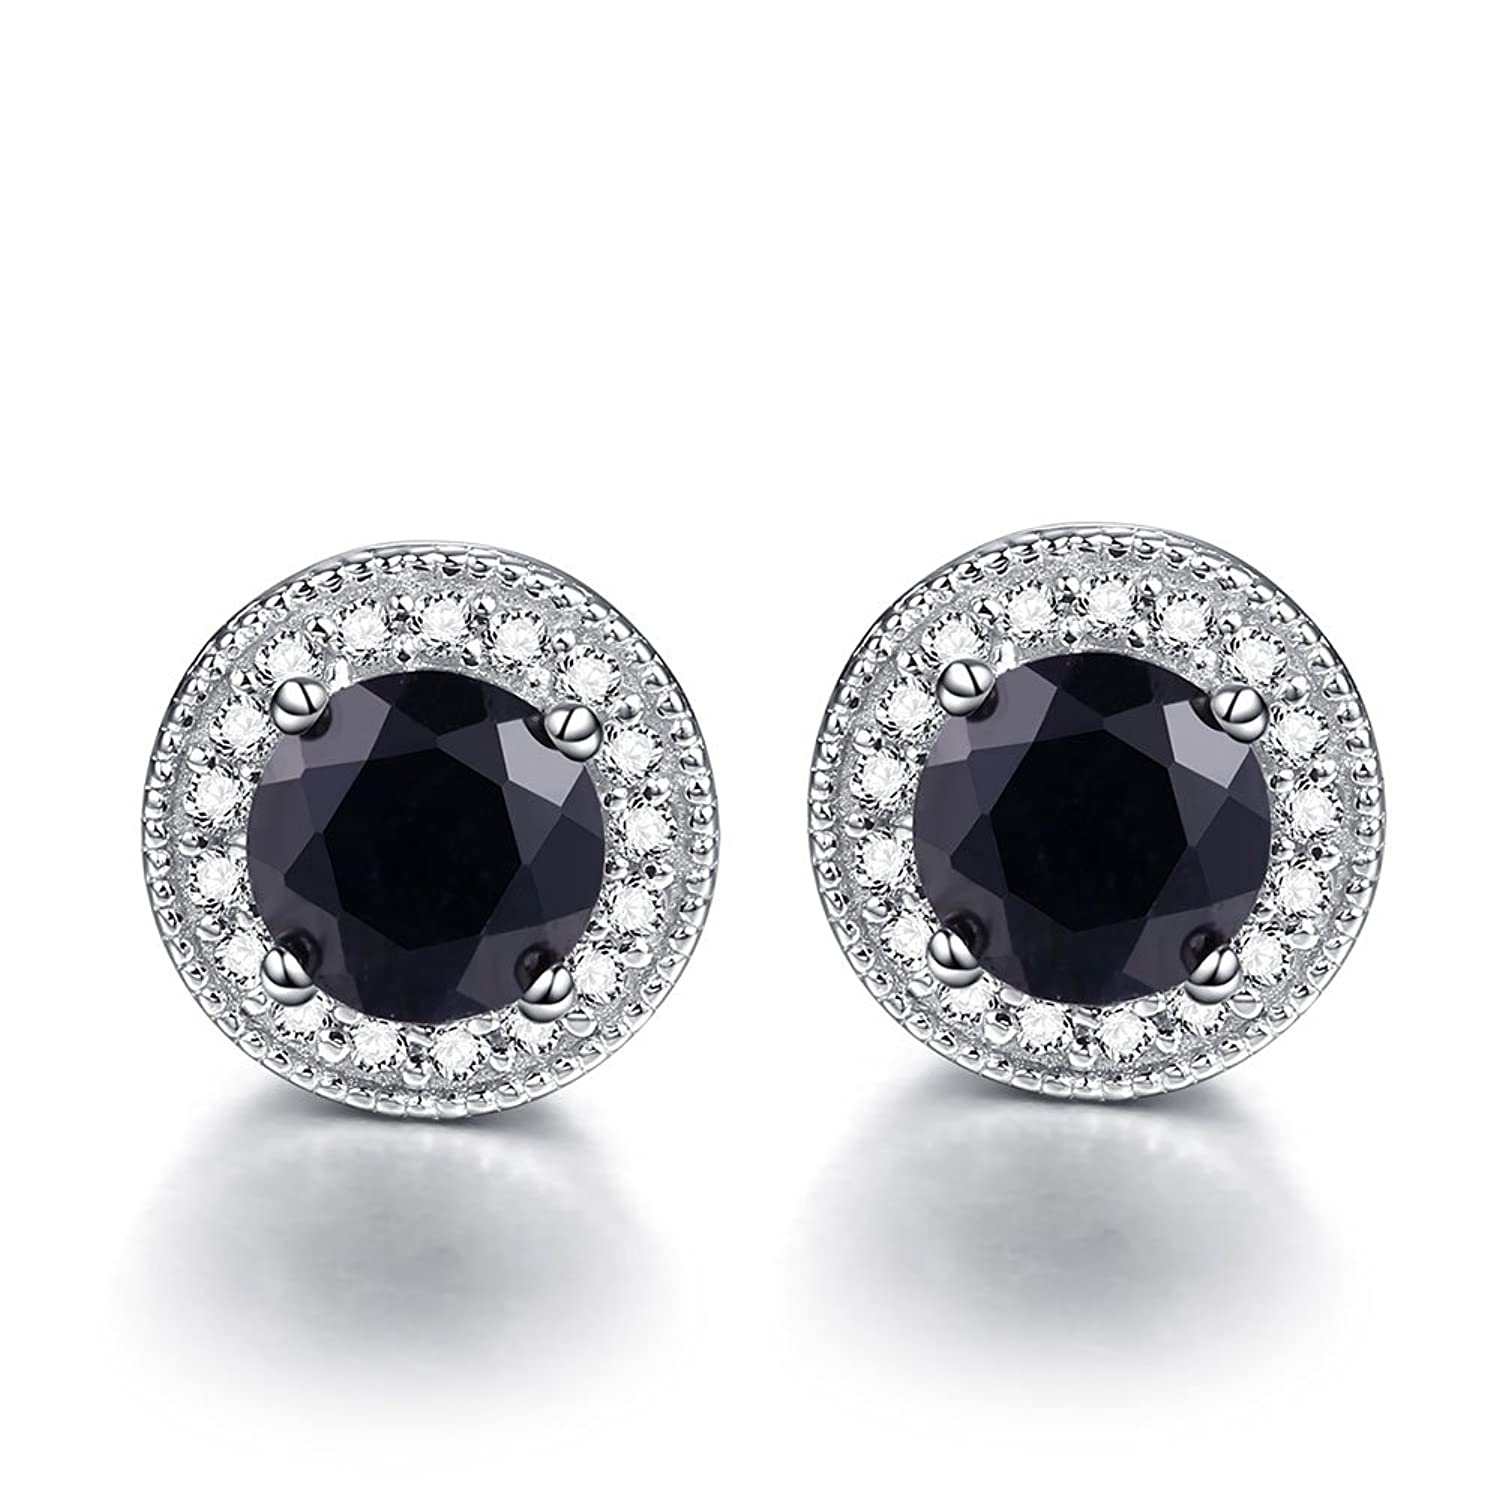 Sterling Silver Round Cut Solitaire Black Sapphire Gemstone Stud Earrings with Halo CZ for Women